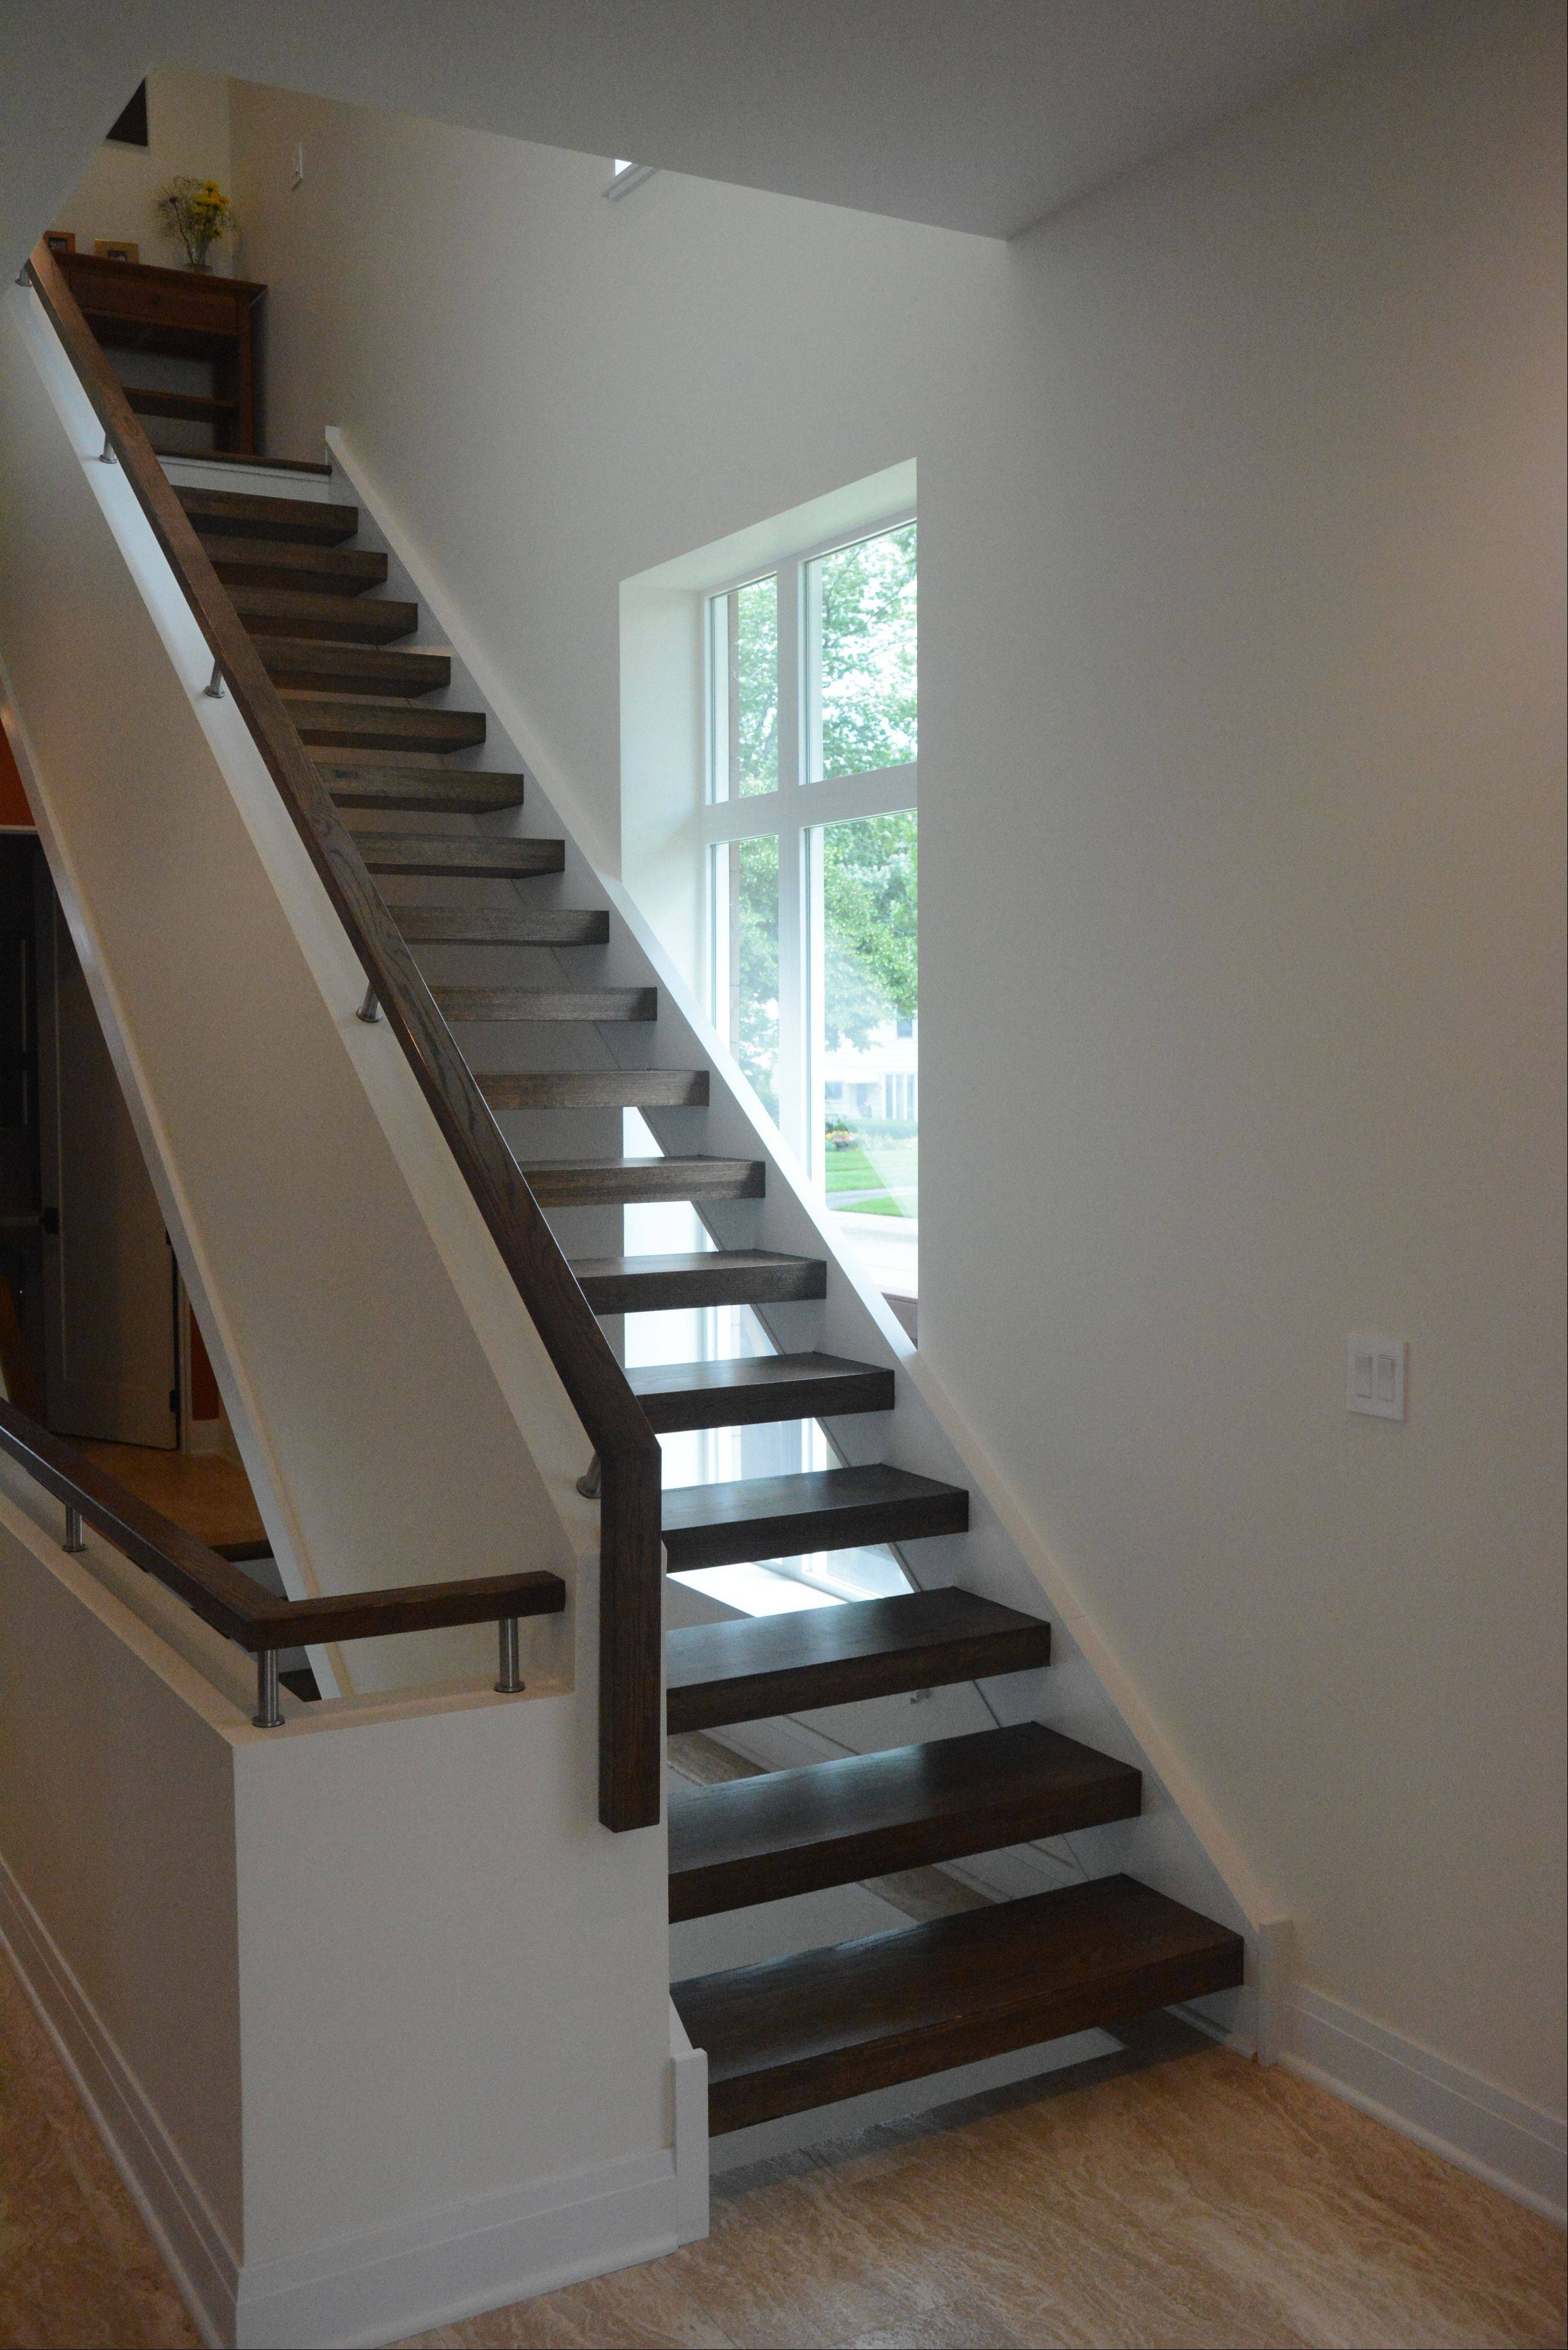 Kenneth and Miranda Turner's house in Arlington Heights features a unique floating staircase.